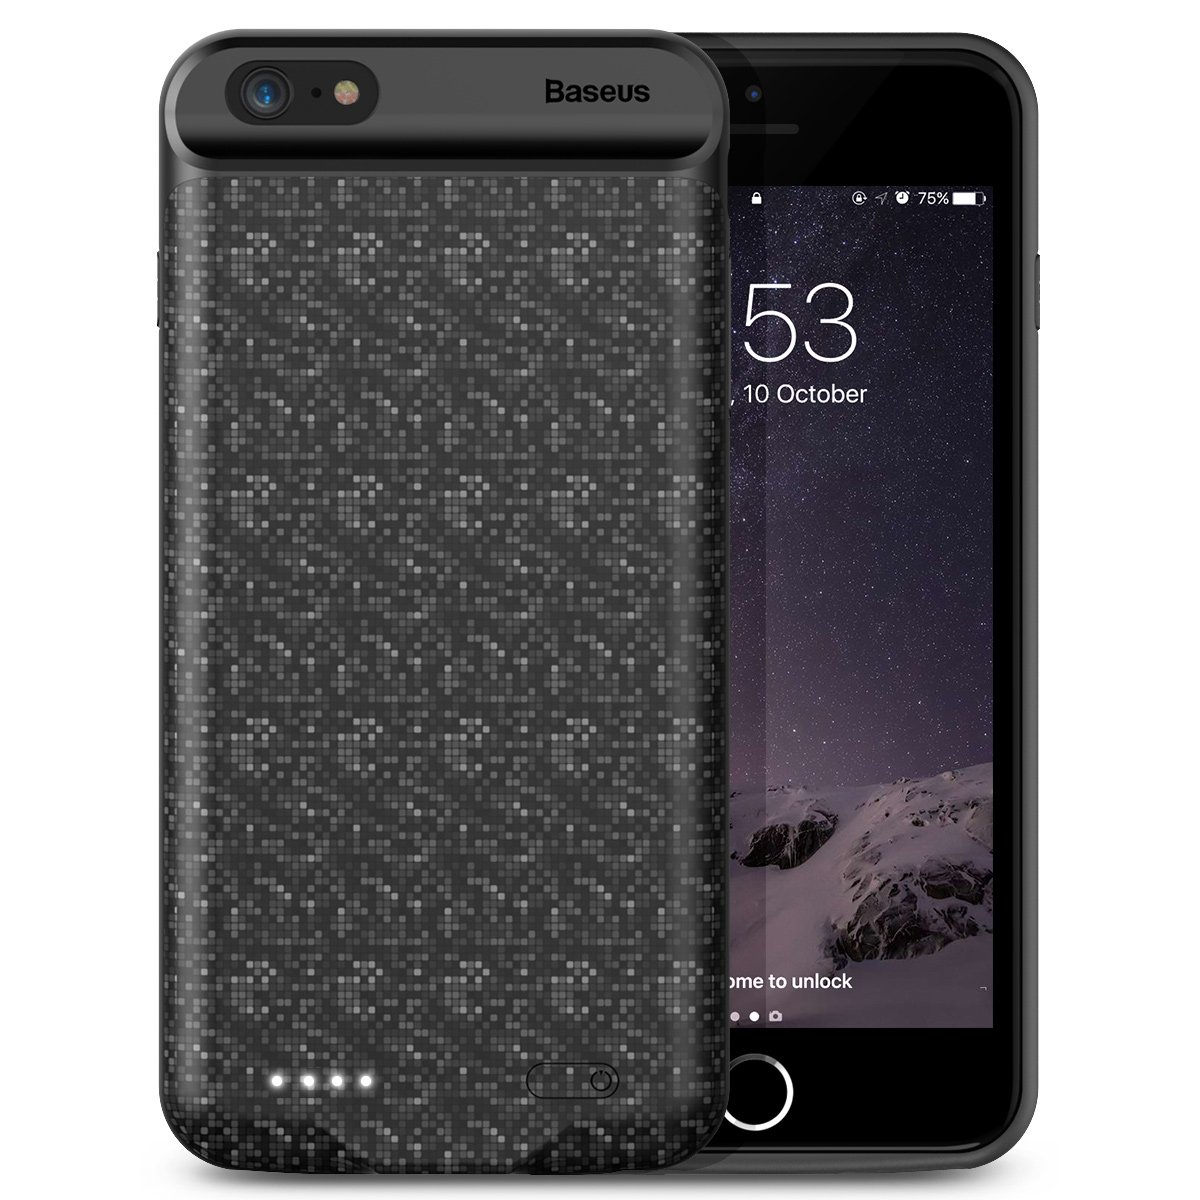 iPhone 6/6s Battery Case, Baseus Plaid Portable Extended Charging Case Fast Charger Case Cover iPhone 6/6s (4.7 inch) 5000mAh Capacity Extra Battery (Black)